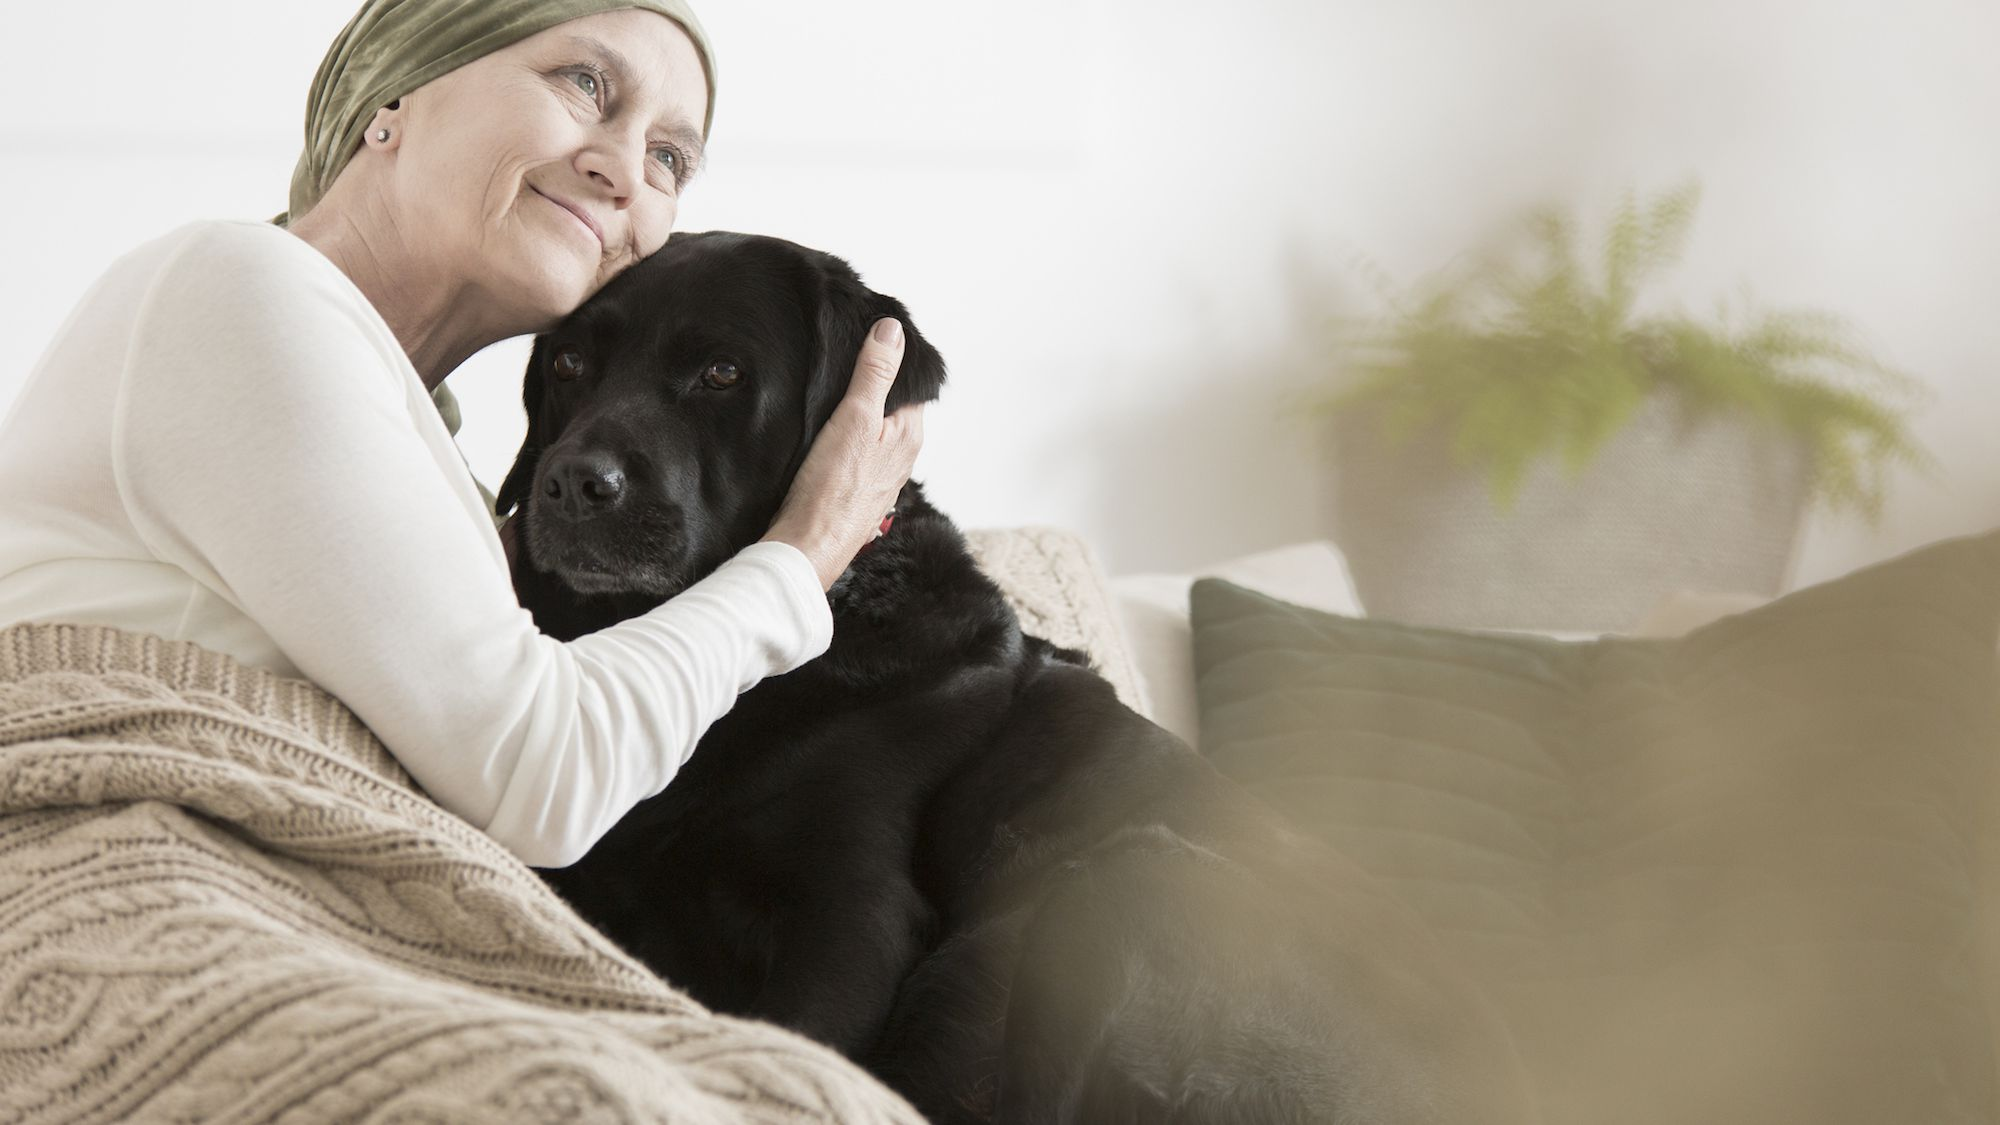 Should Cancer Patients Keep Their Pets?